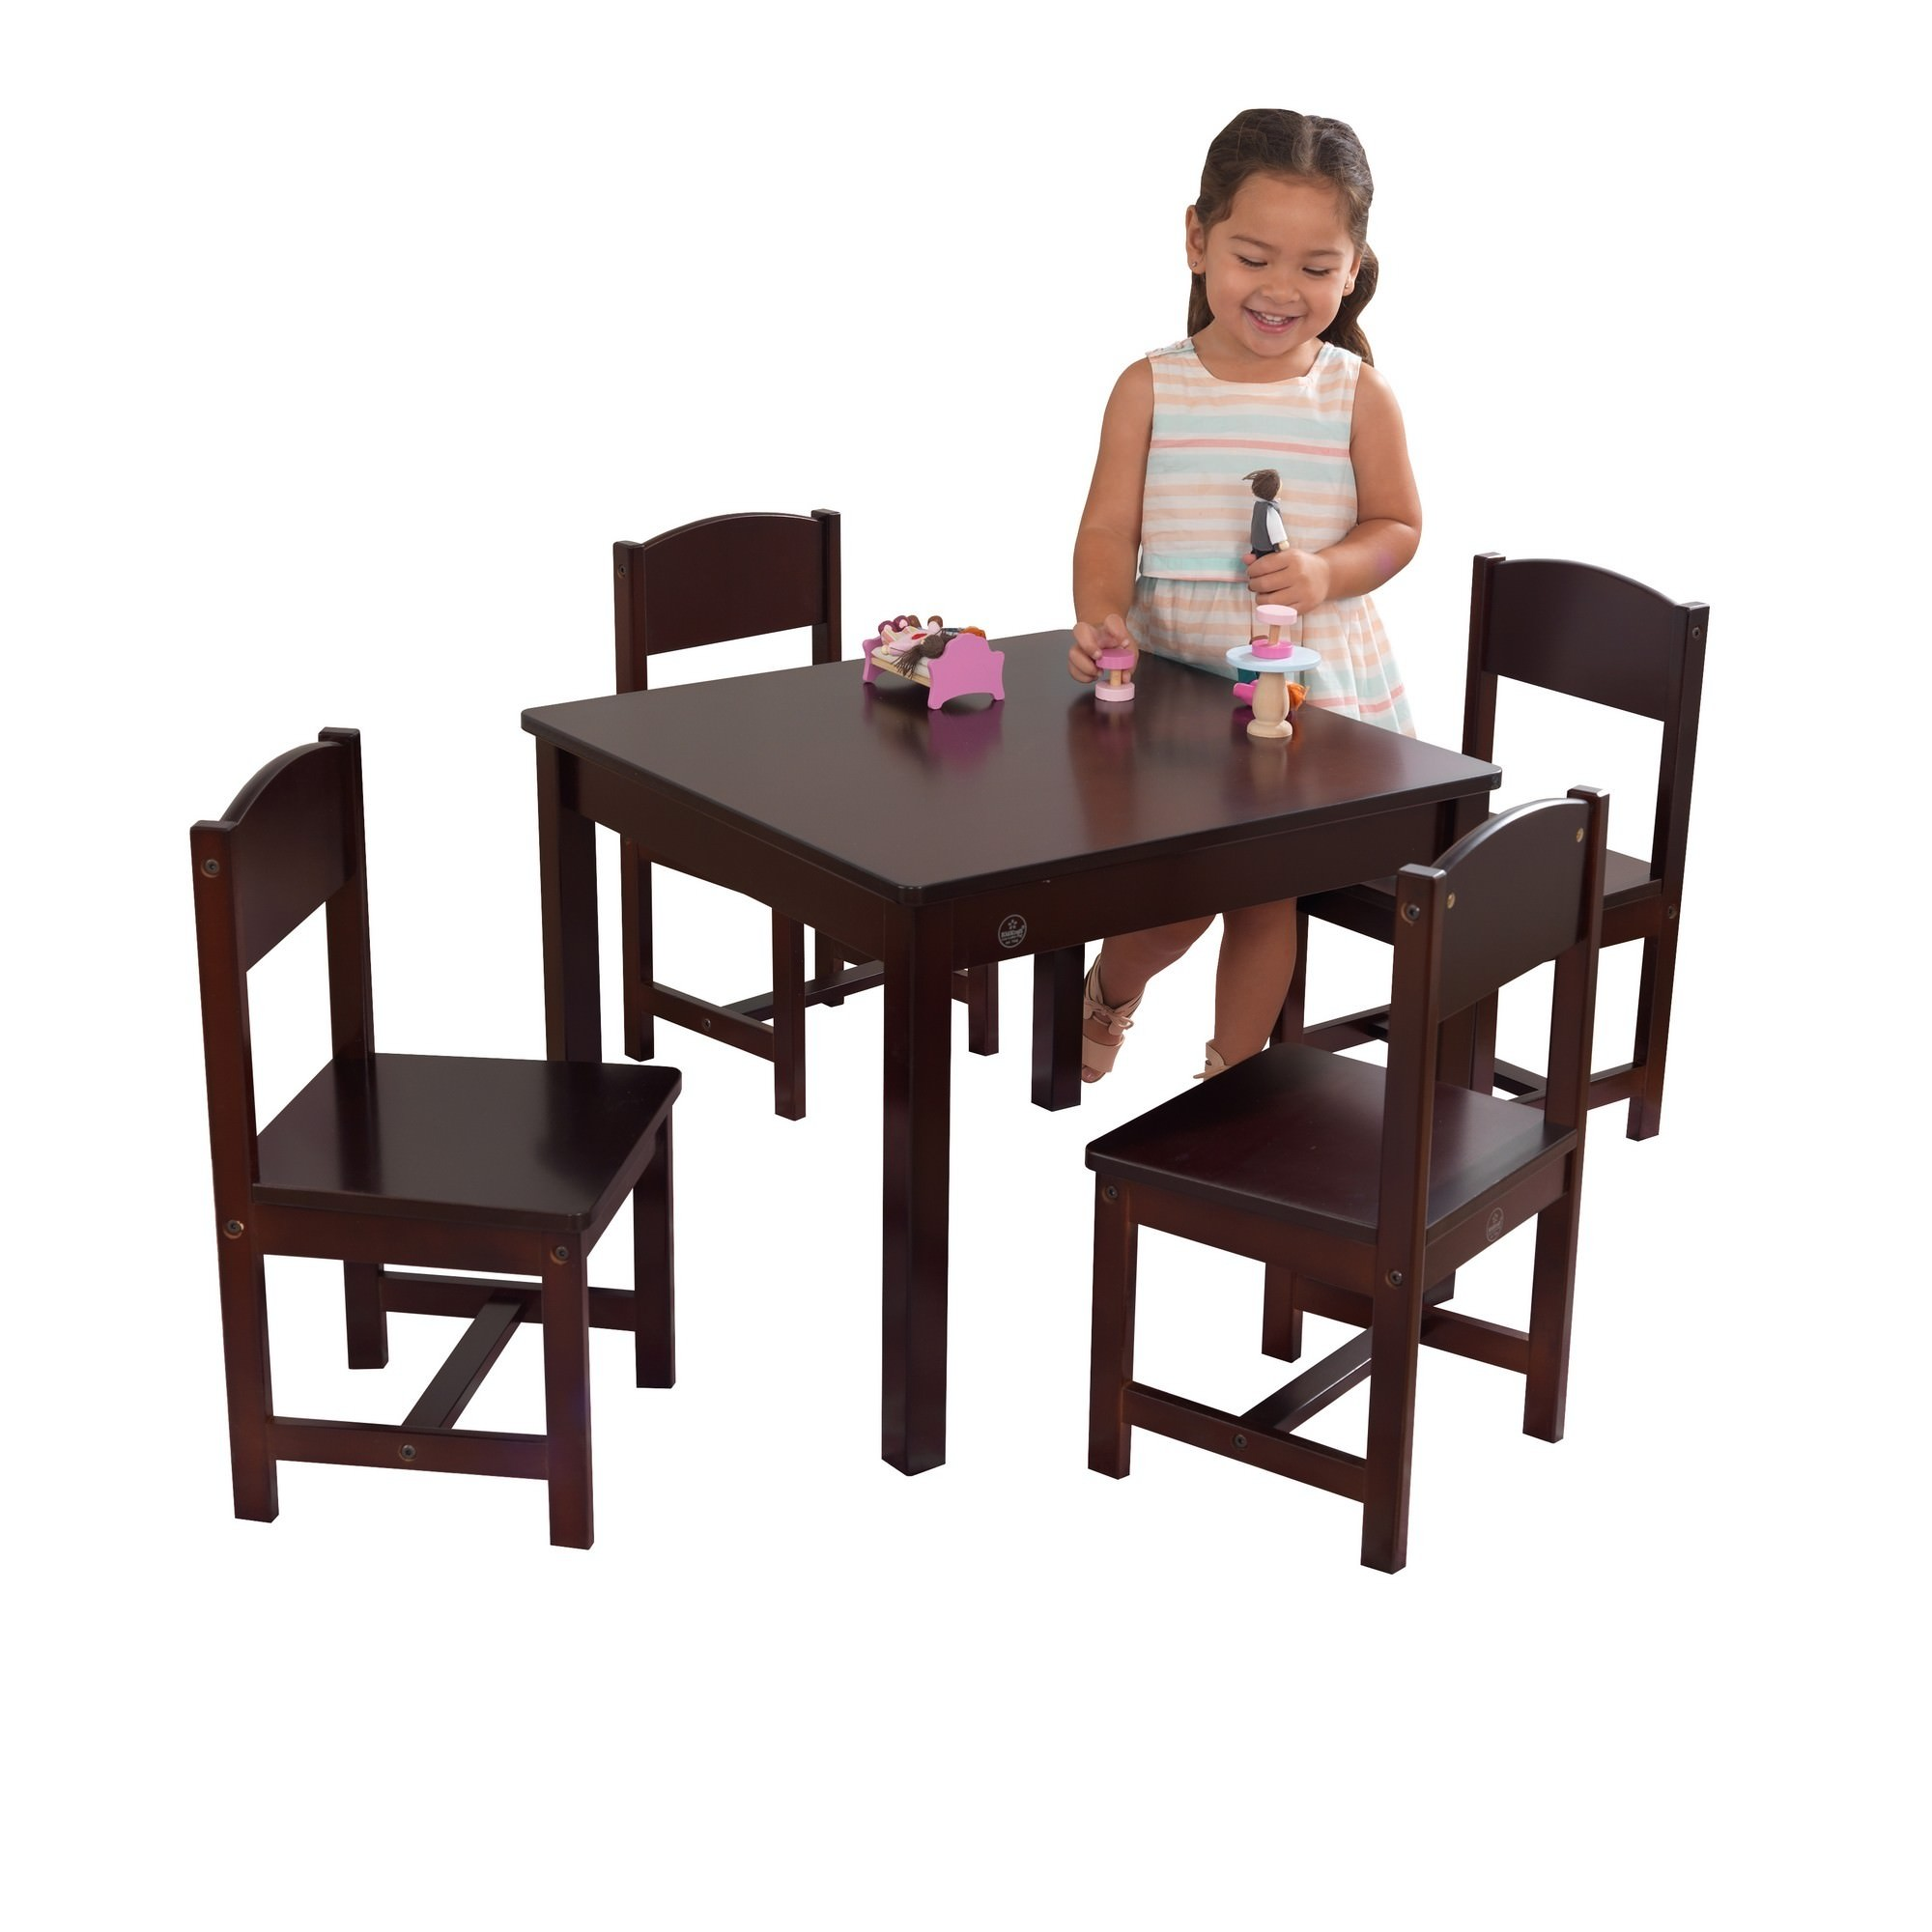 Kidkraft Farmhouse 5 Piece Kids Table & Chairs Set, Espresso